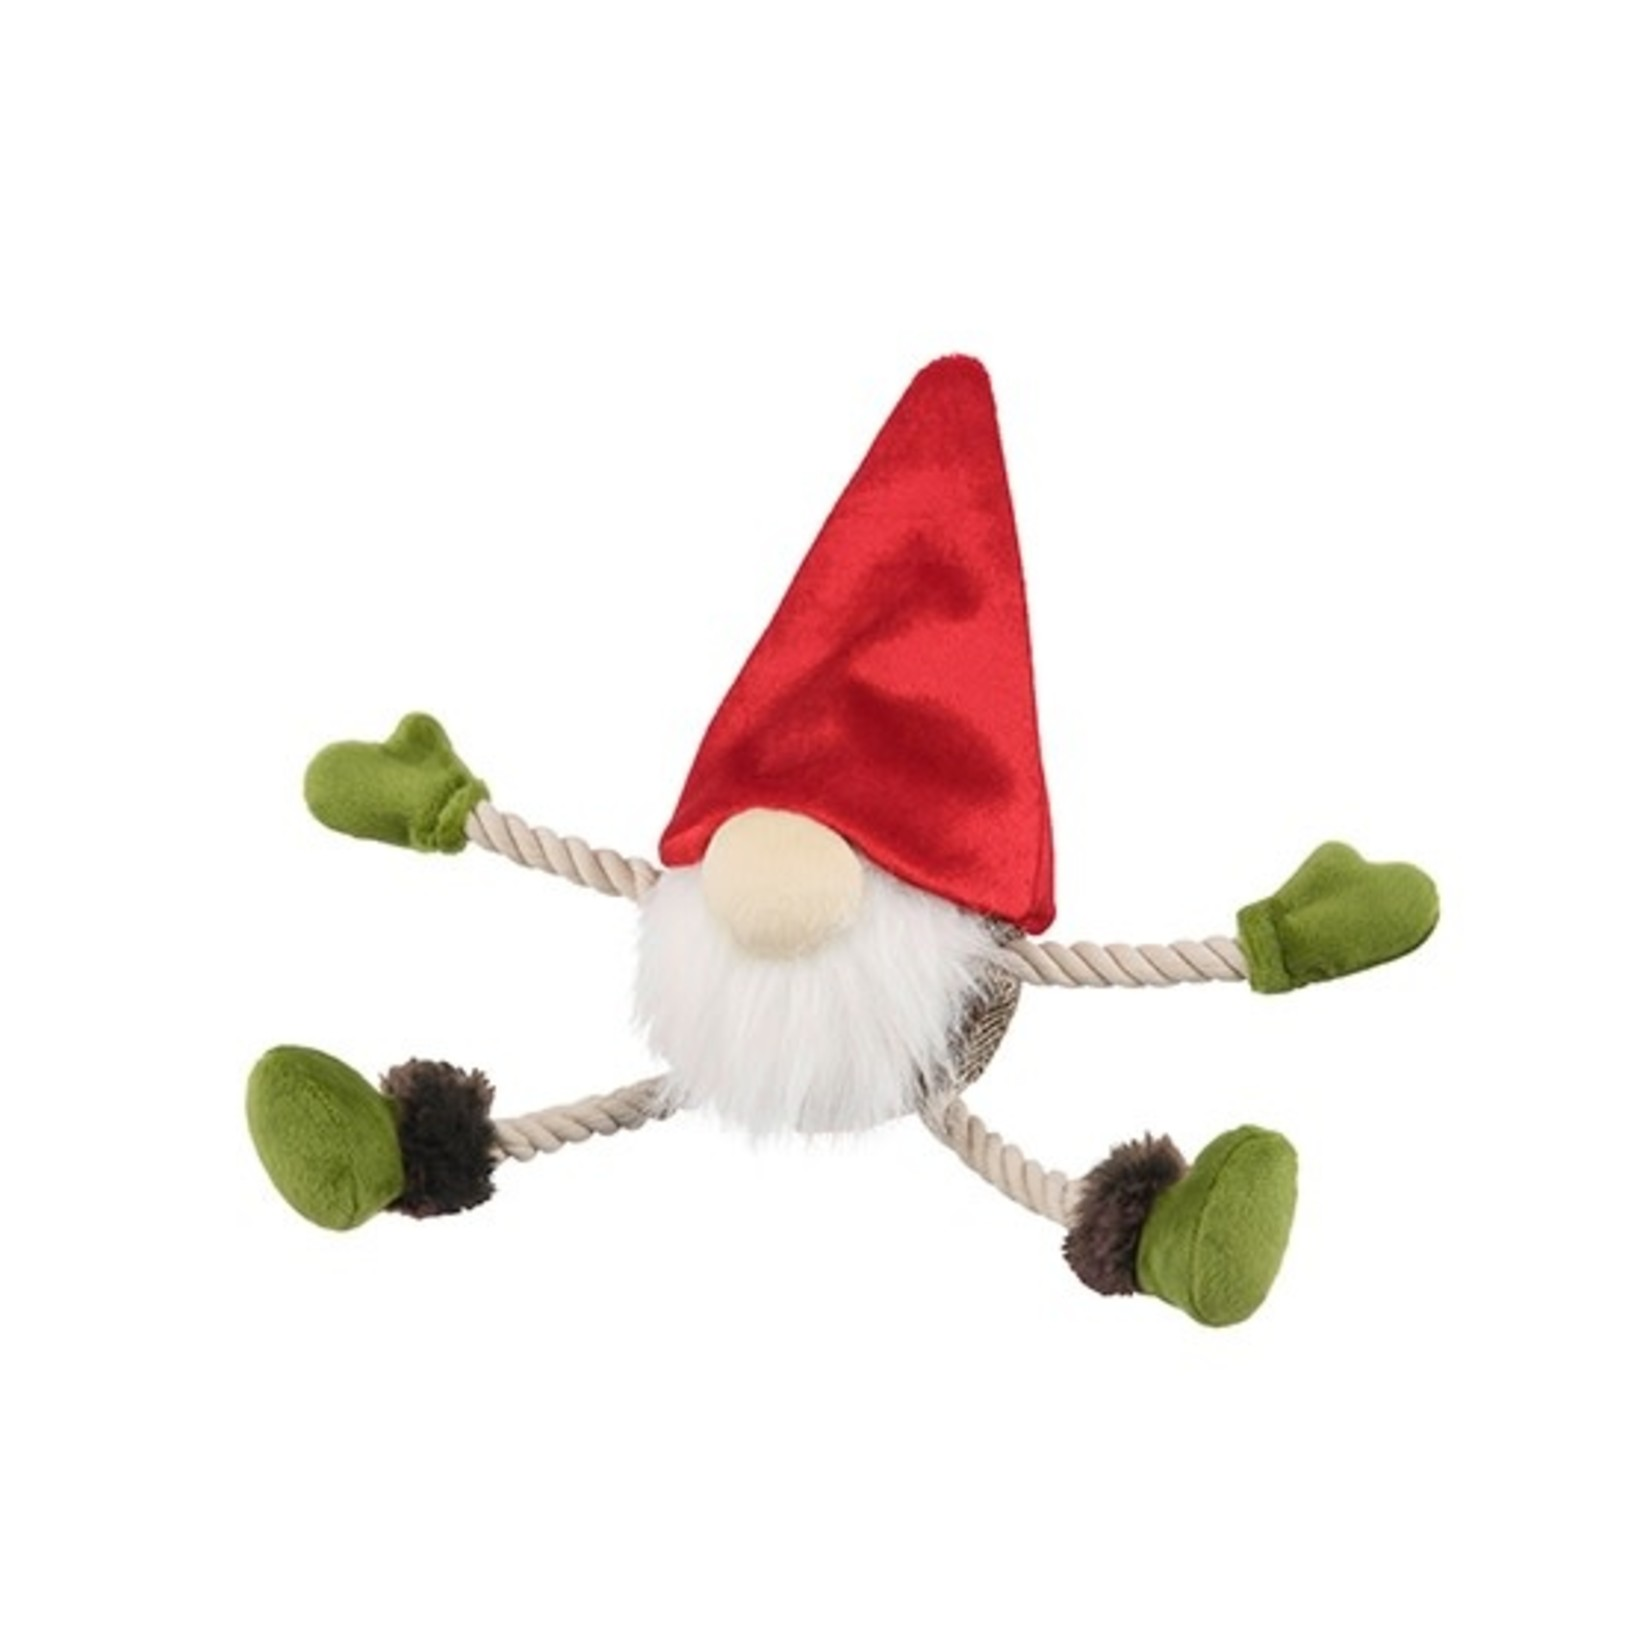 PLAY PLAY Mythical Creatures_Gnome